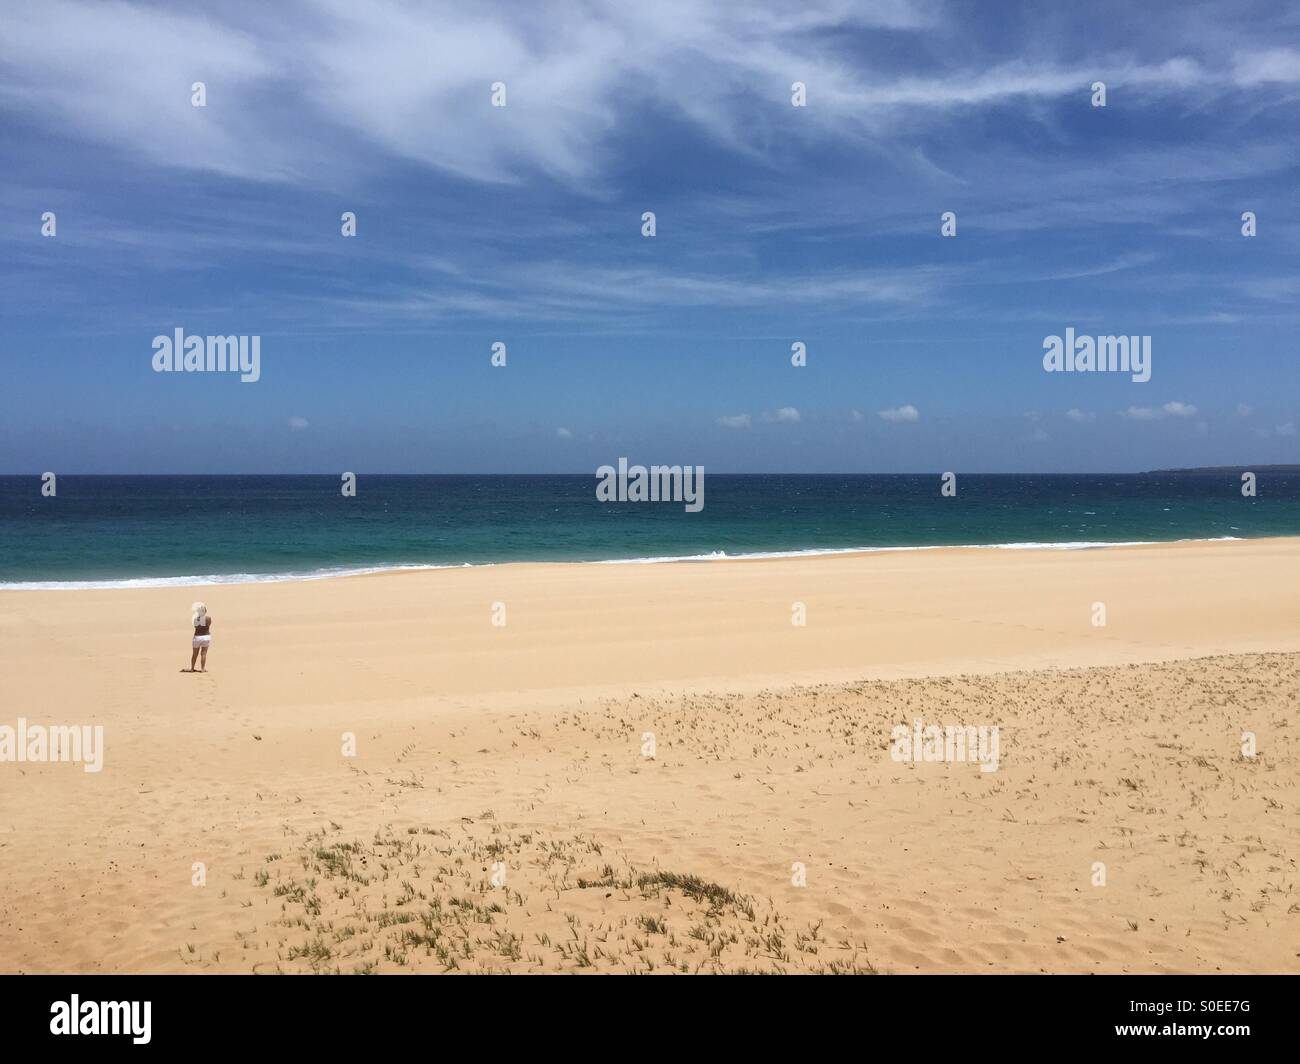 8ff493fd8d2c0 Lonely Beach Walk Stock Photos   Lonely Beach Walk Stock Images - Alamy